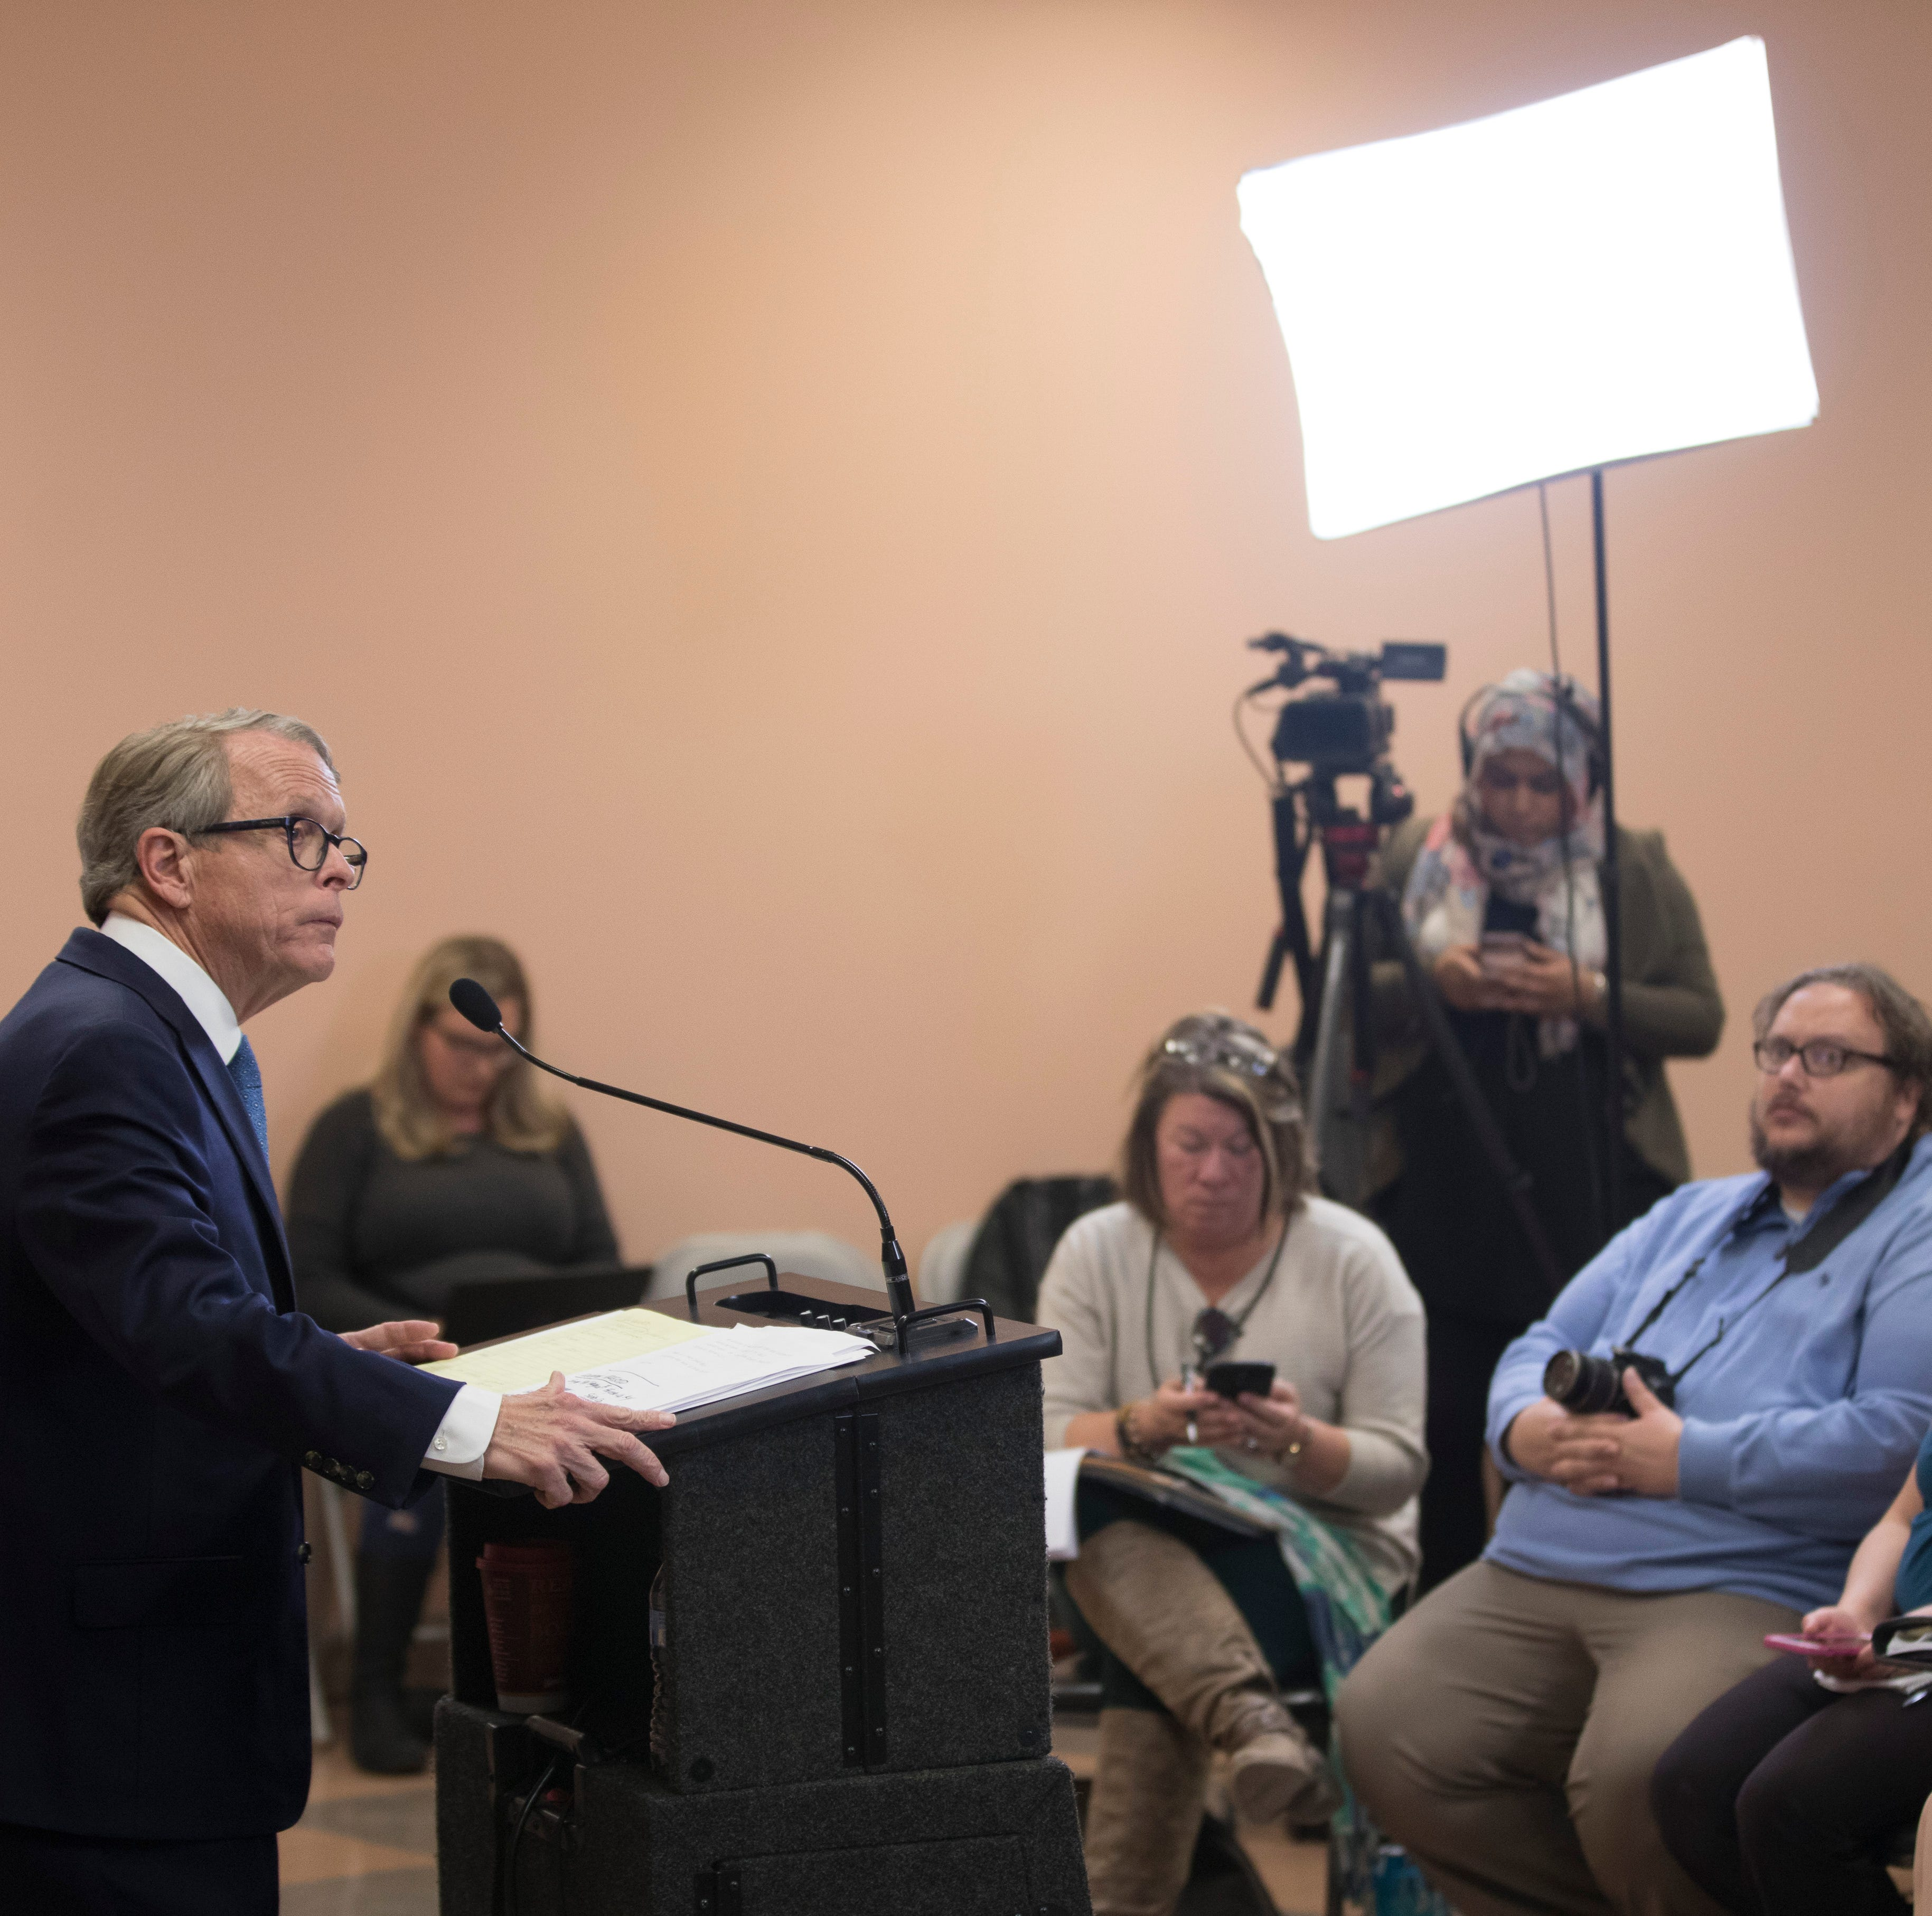 DeWine on coming Pike County trials: 'People are just going to shake their heads.'